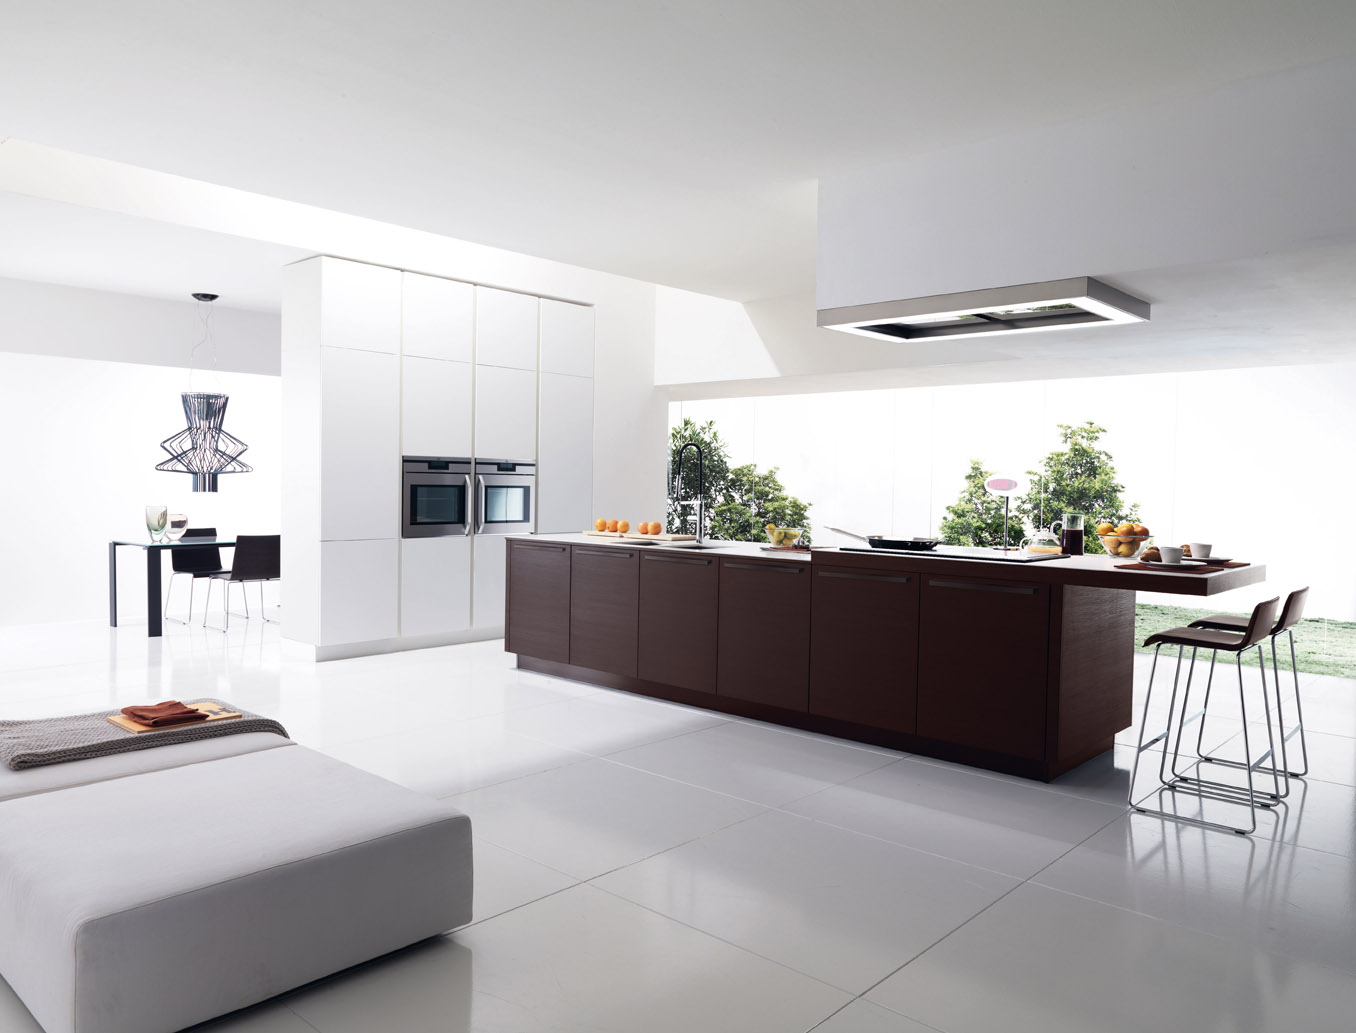 Fresh Italian Kitchen With Contemporary Cabinet and Bar Chairs